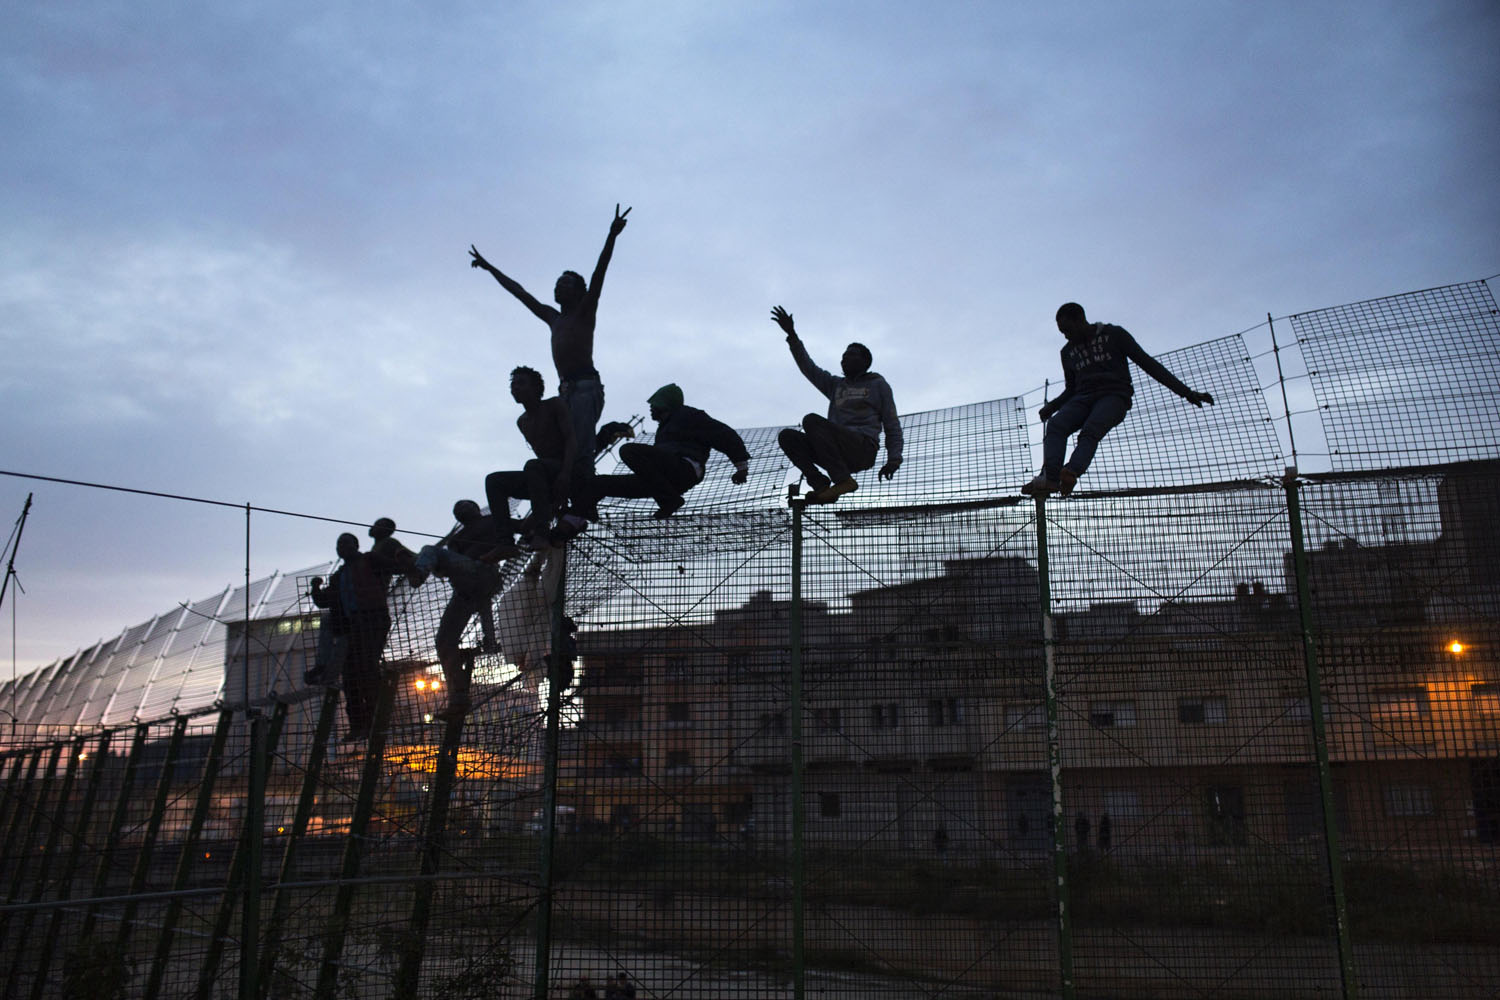 Mar. 28, 2014. Sub-Saharan migrants climb over a metallic fence that divides Morocco and the Spanish enclave of Melilla.